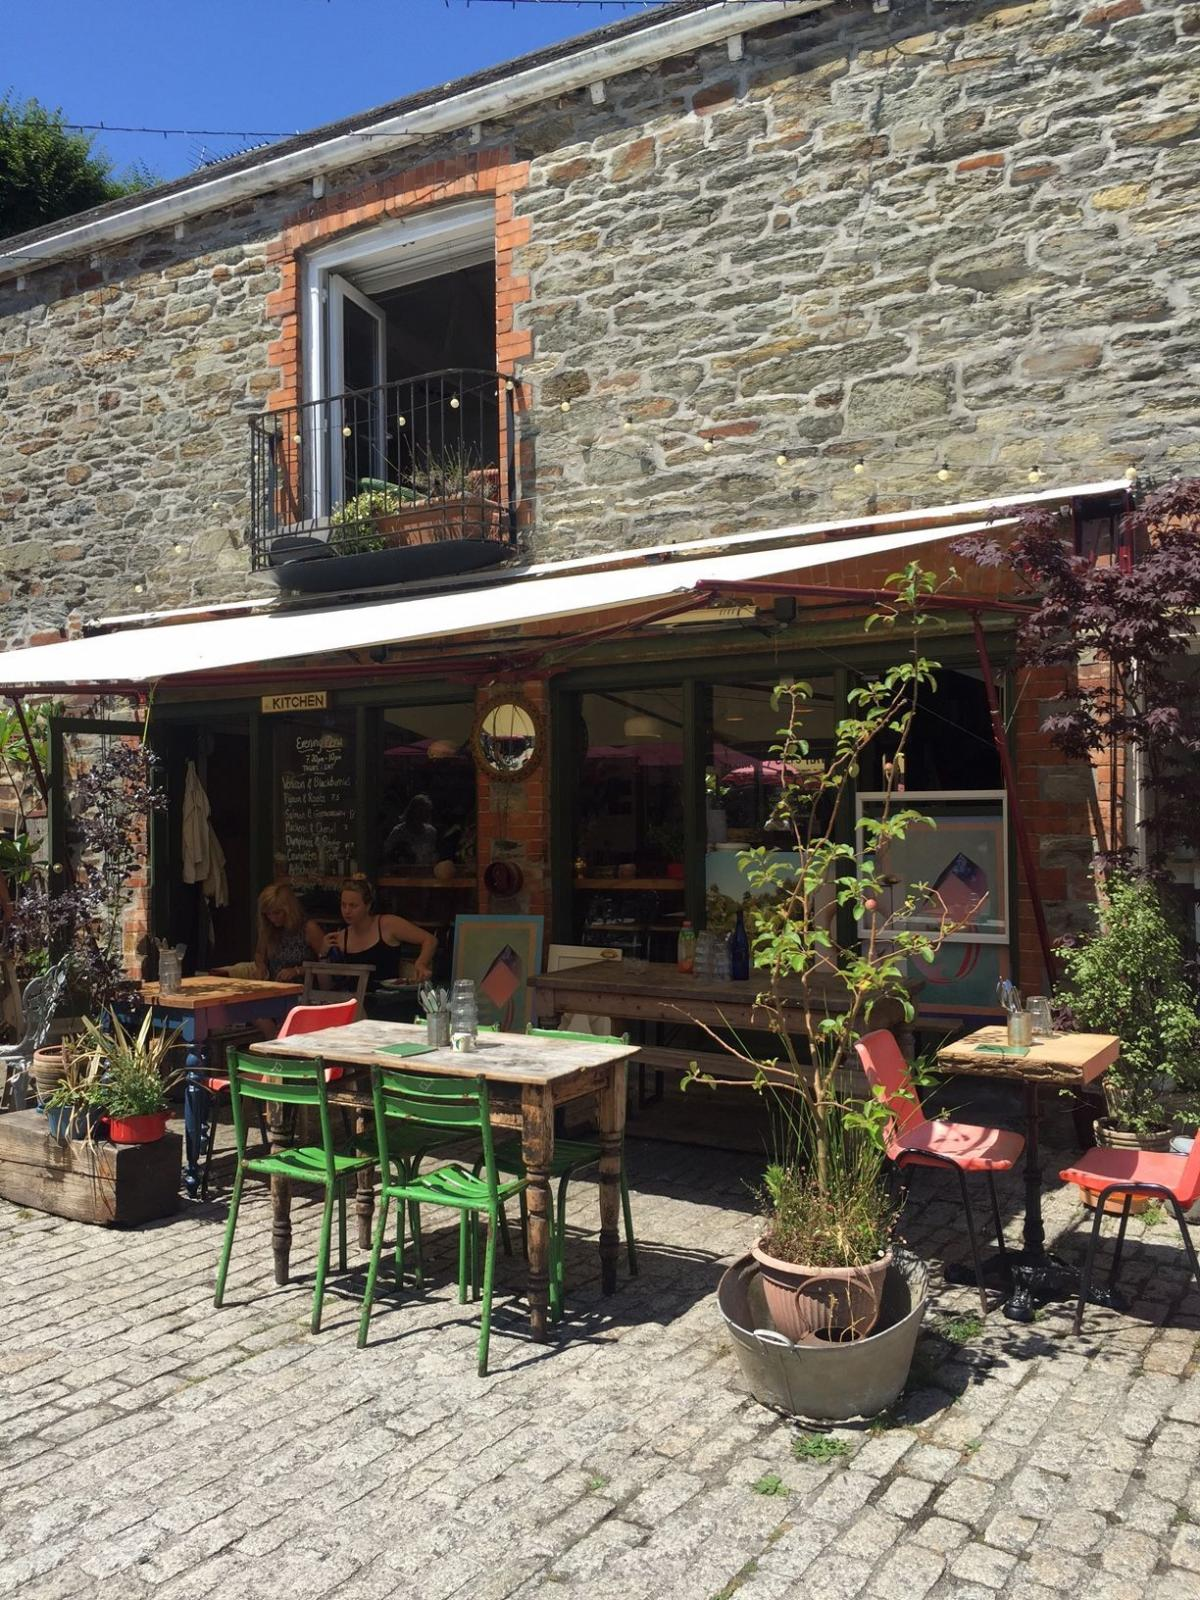 Tony Cowell reviews The Kitchen, Falmouth | Falmouth Packet